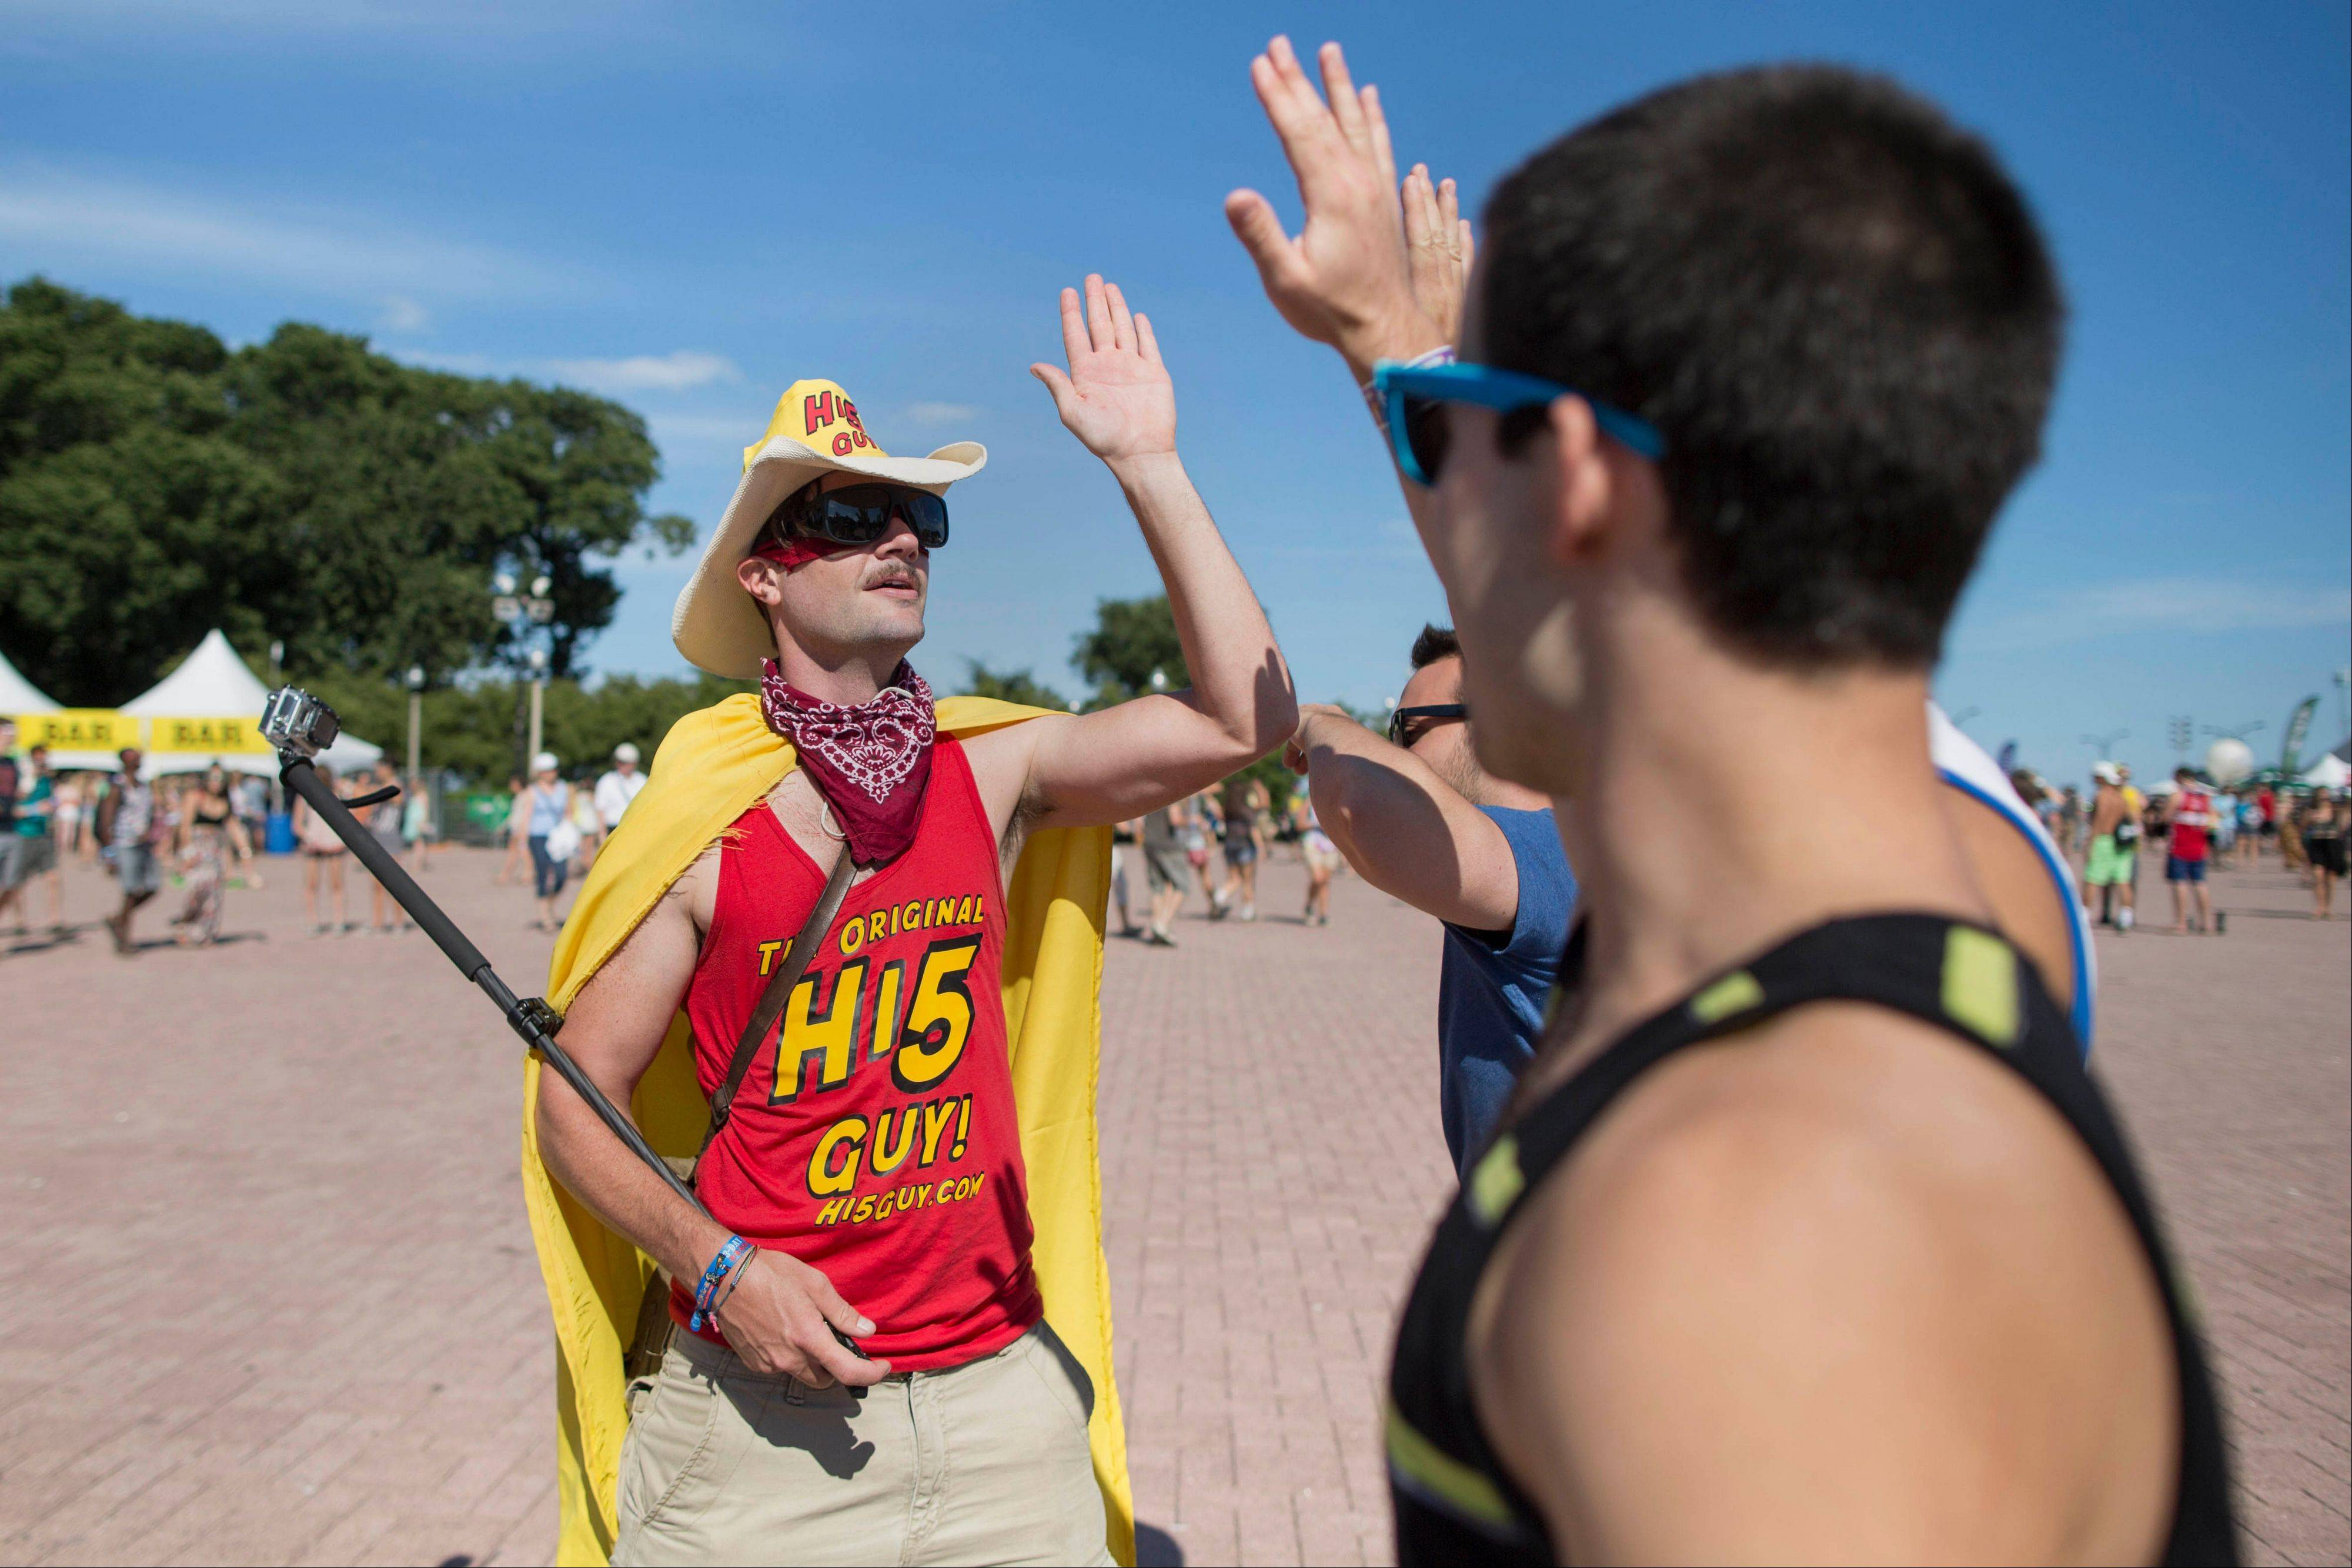 "Stretch Flemmings, who also goes by ""The Original Hi5 Guy"" gives high-fives to Festival attendees who walk past at the Lollapalooza Festival in Chicago, Saturday, Aug. 3, 2013. He is raising money for Los Angeles Children's Hospital. The more than two-decade-old festival opened Friday in Chicago's lakefront Grant Park."